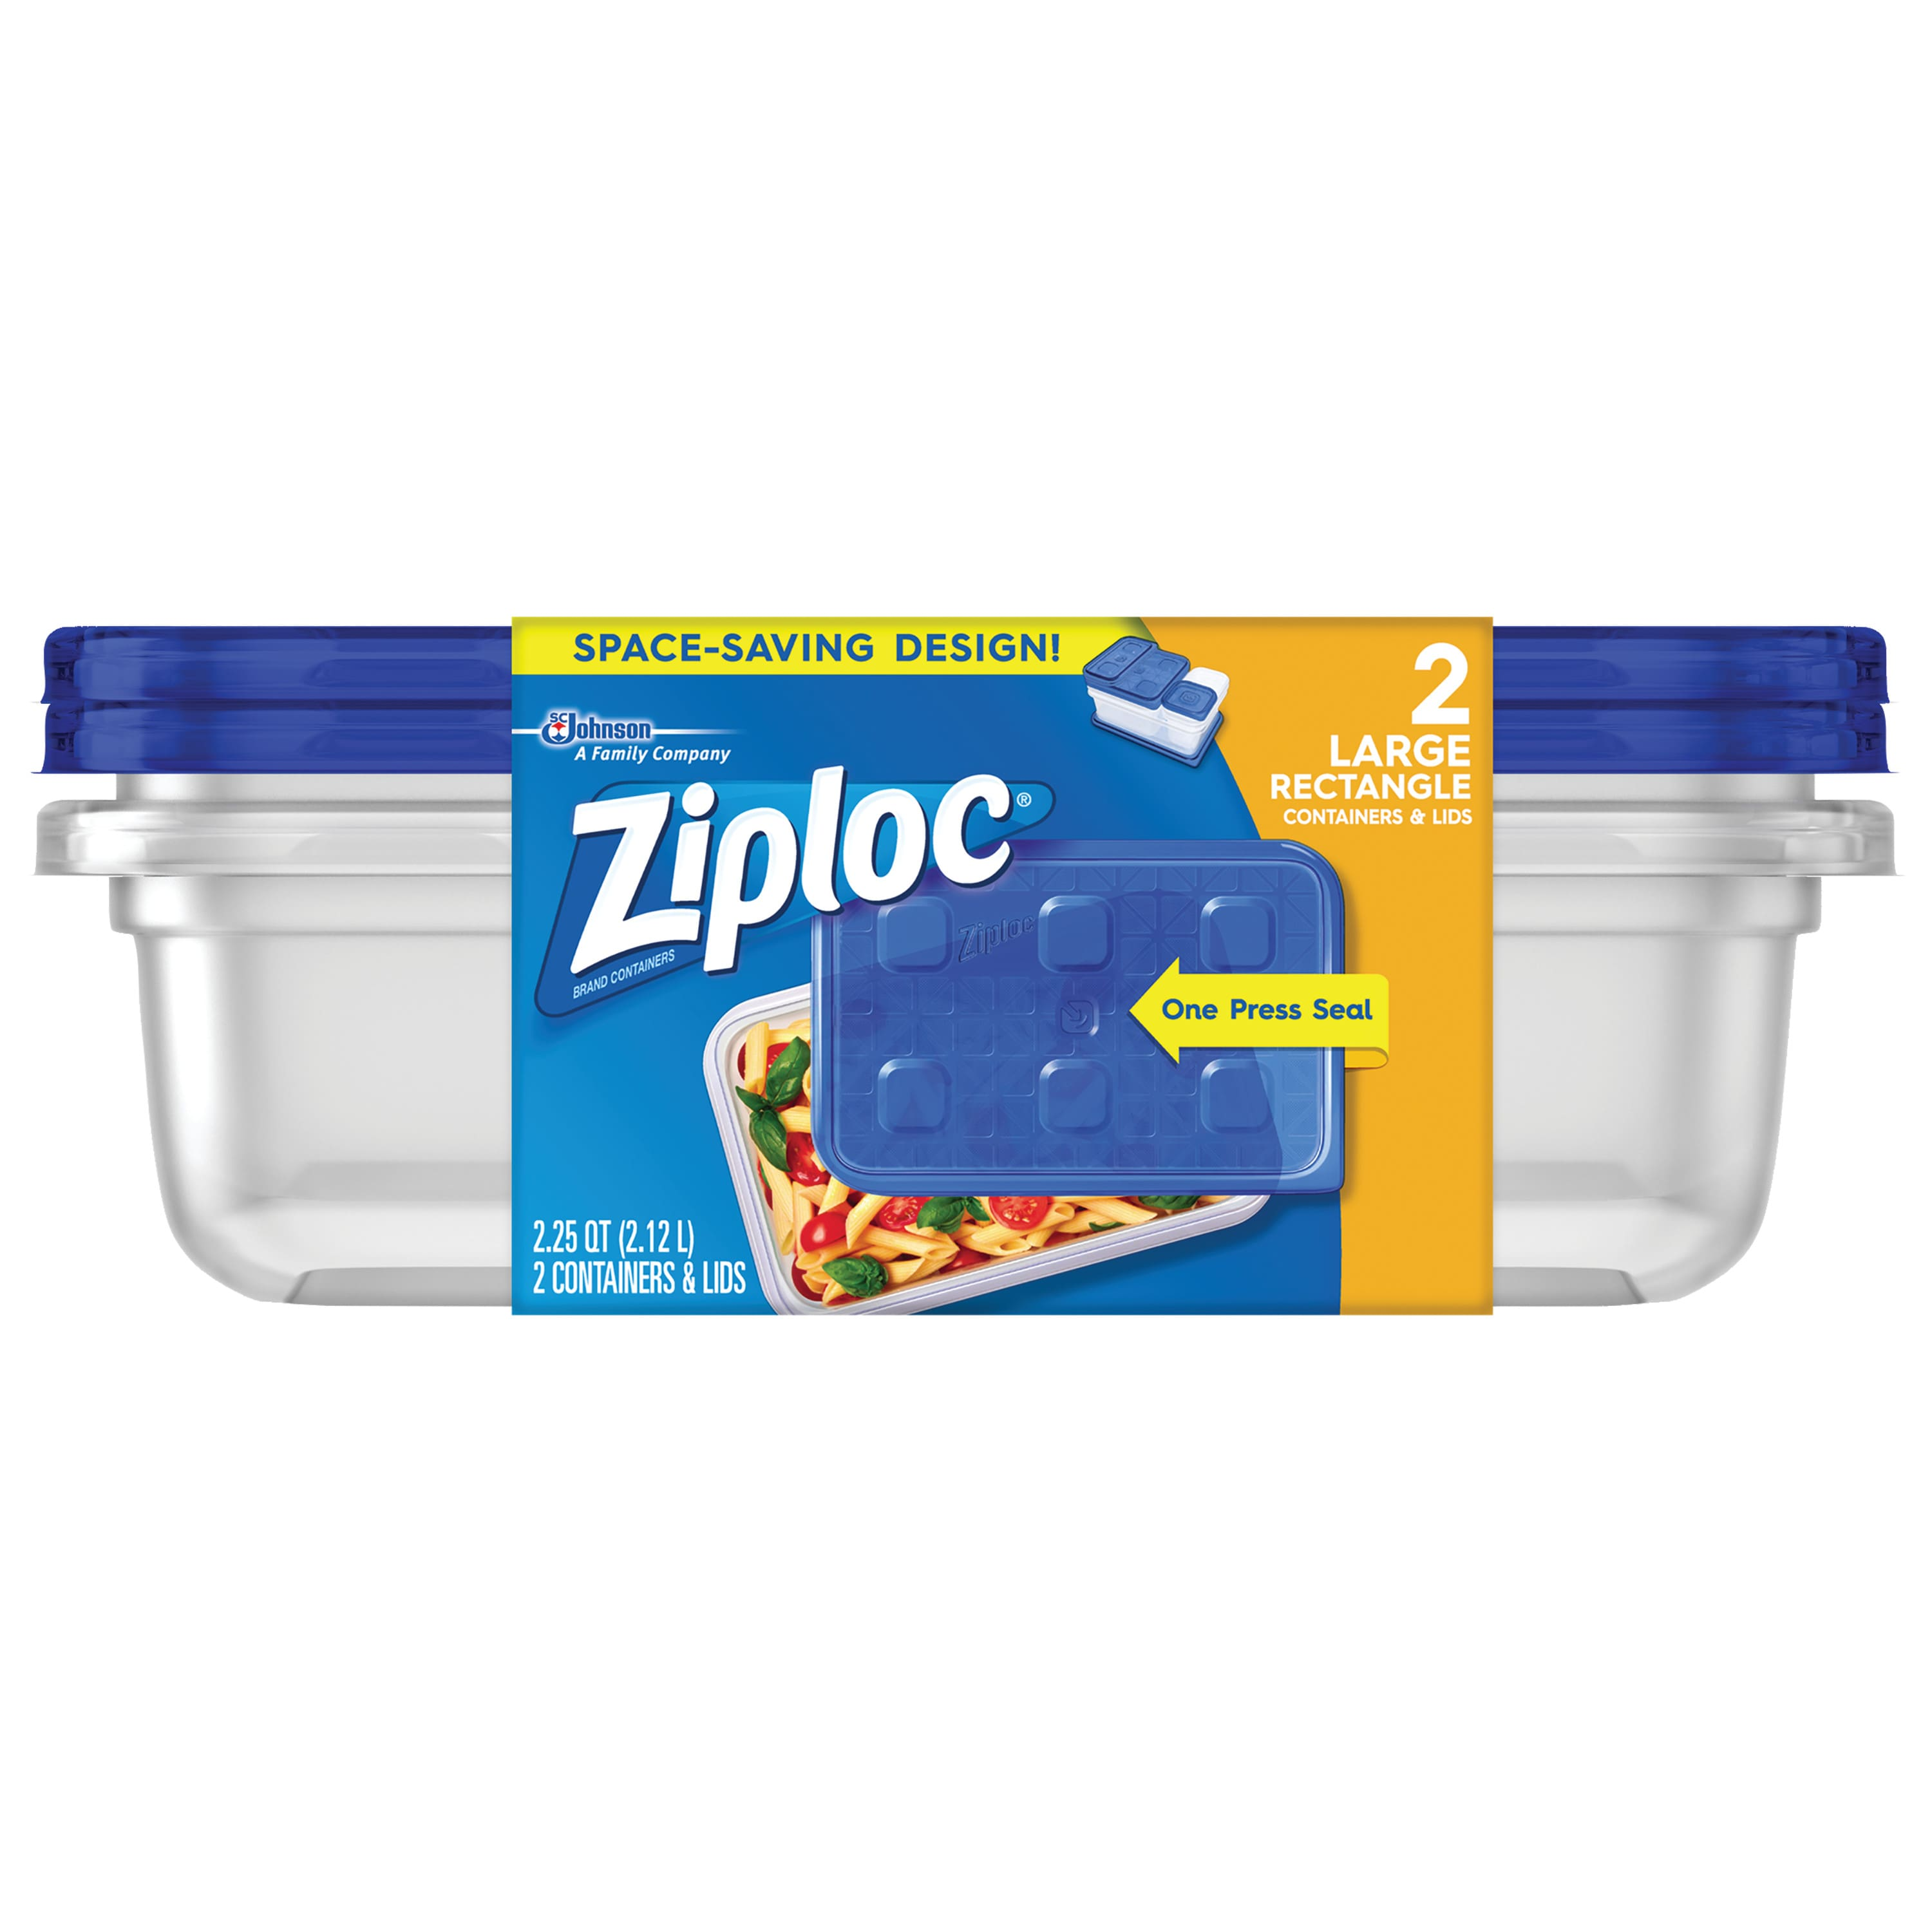 2-Count Ziploc Container with One Press Seal (Large Rectangle) $1.25 + Free Shipping